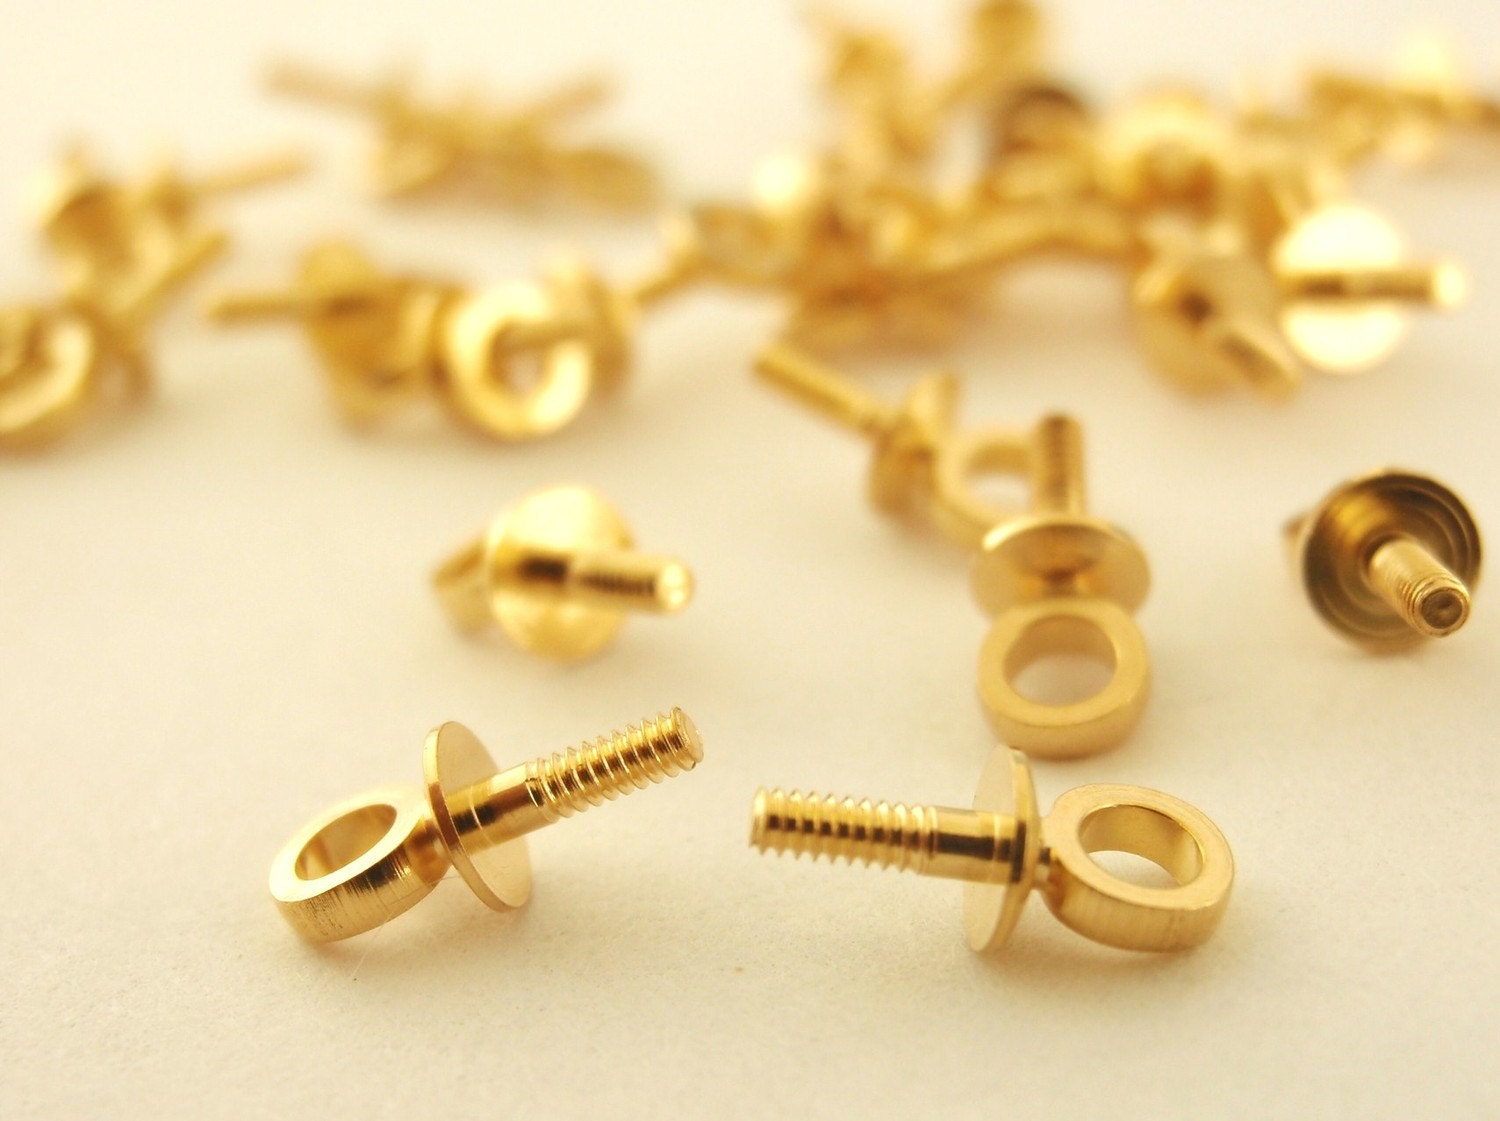 25 gold plated screw eyes 7 mm x 3 mm